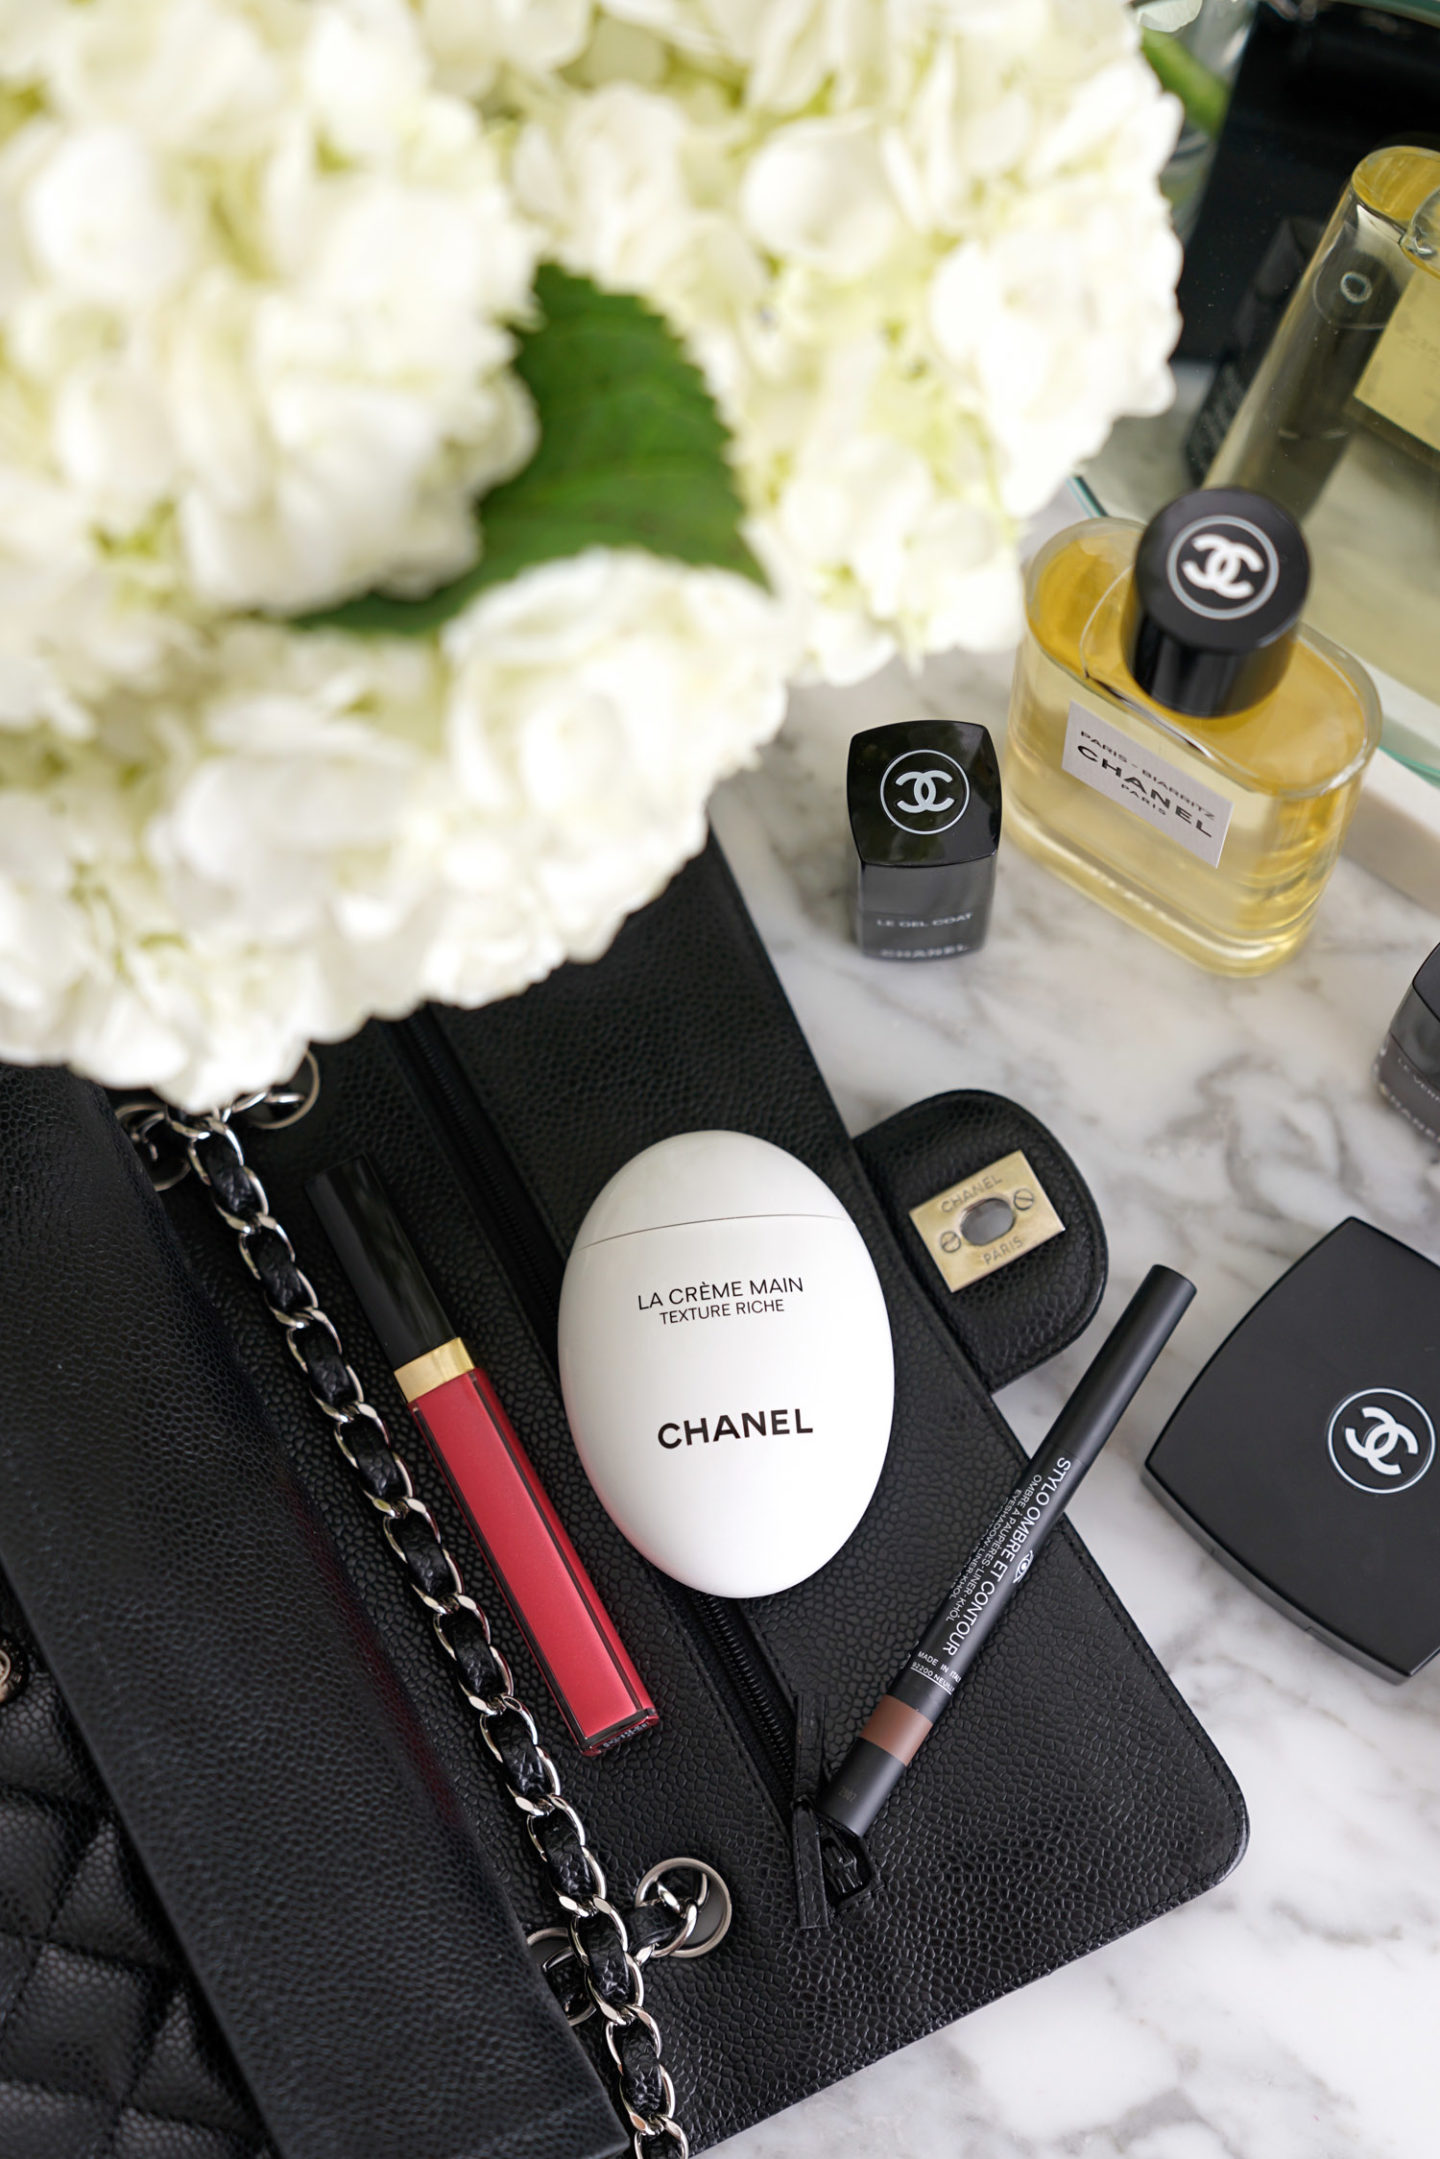 Chanel La Creme Main Texture Riche